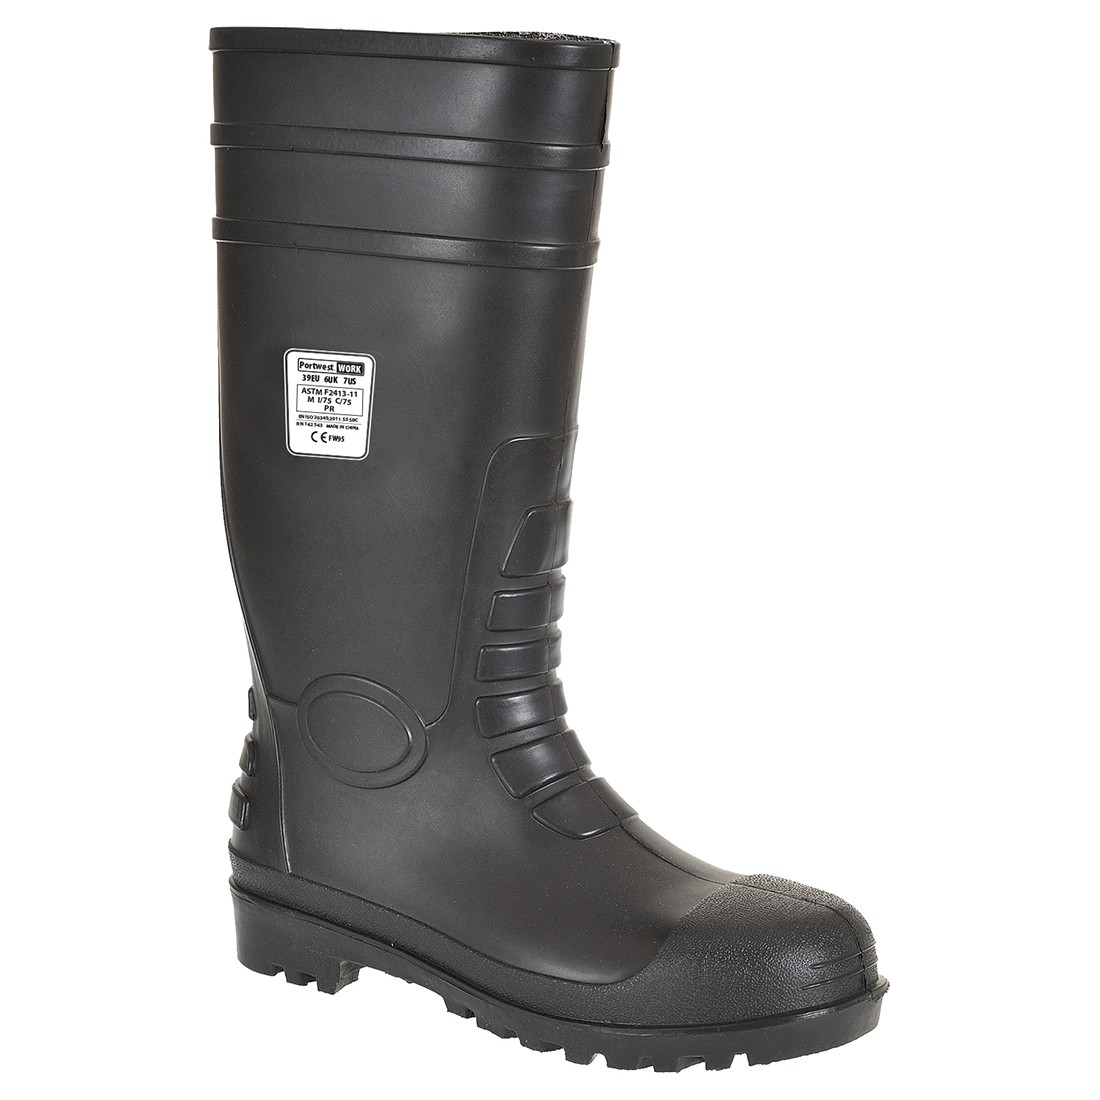 Portwest Total Safety Boot FW95, Black